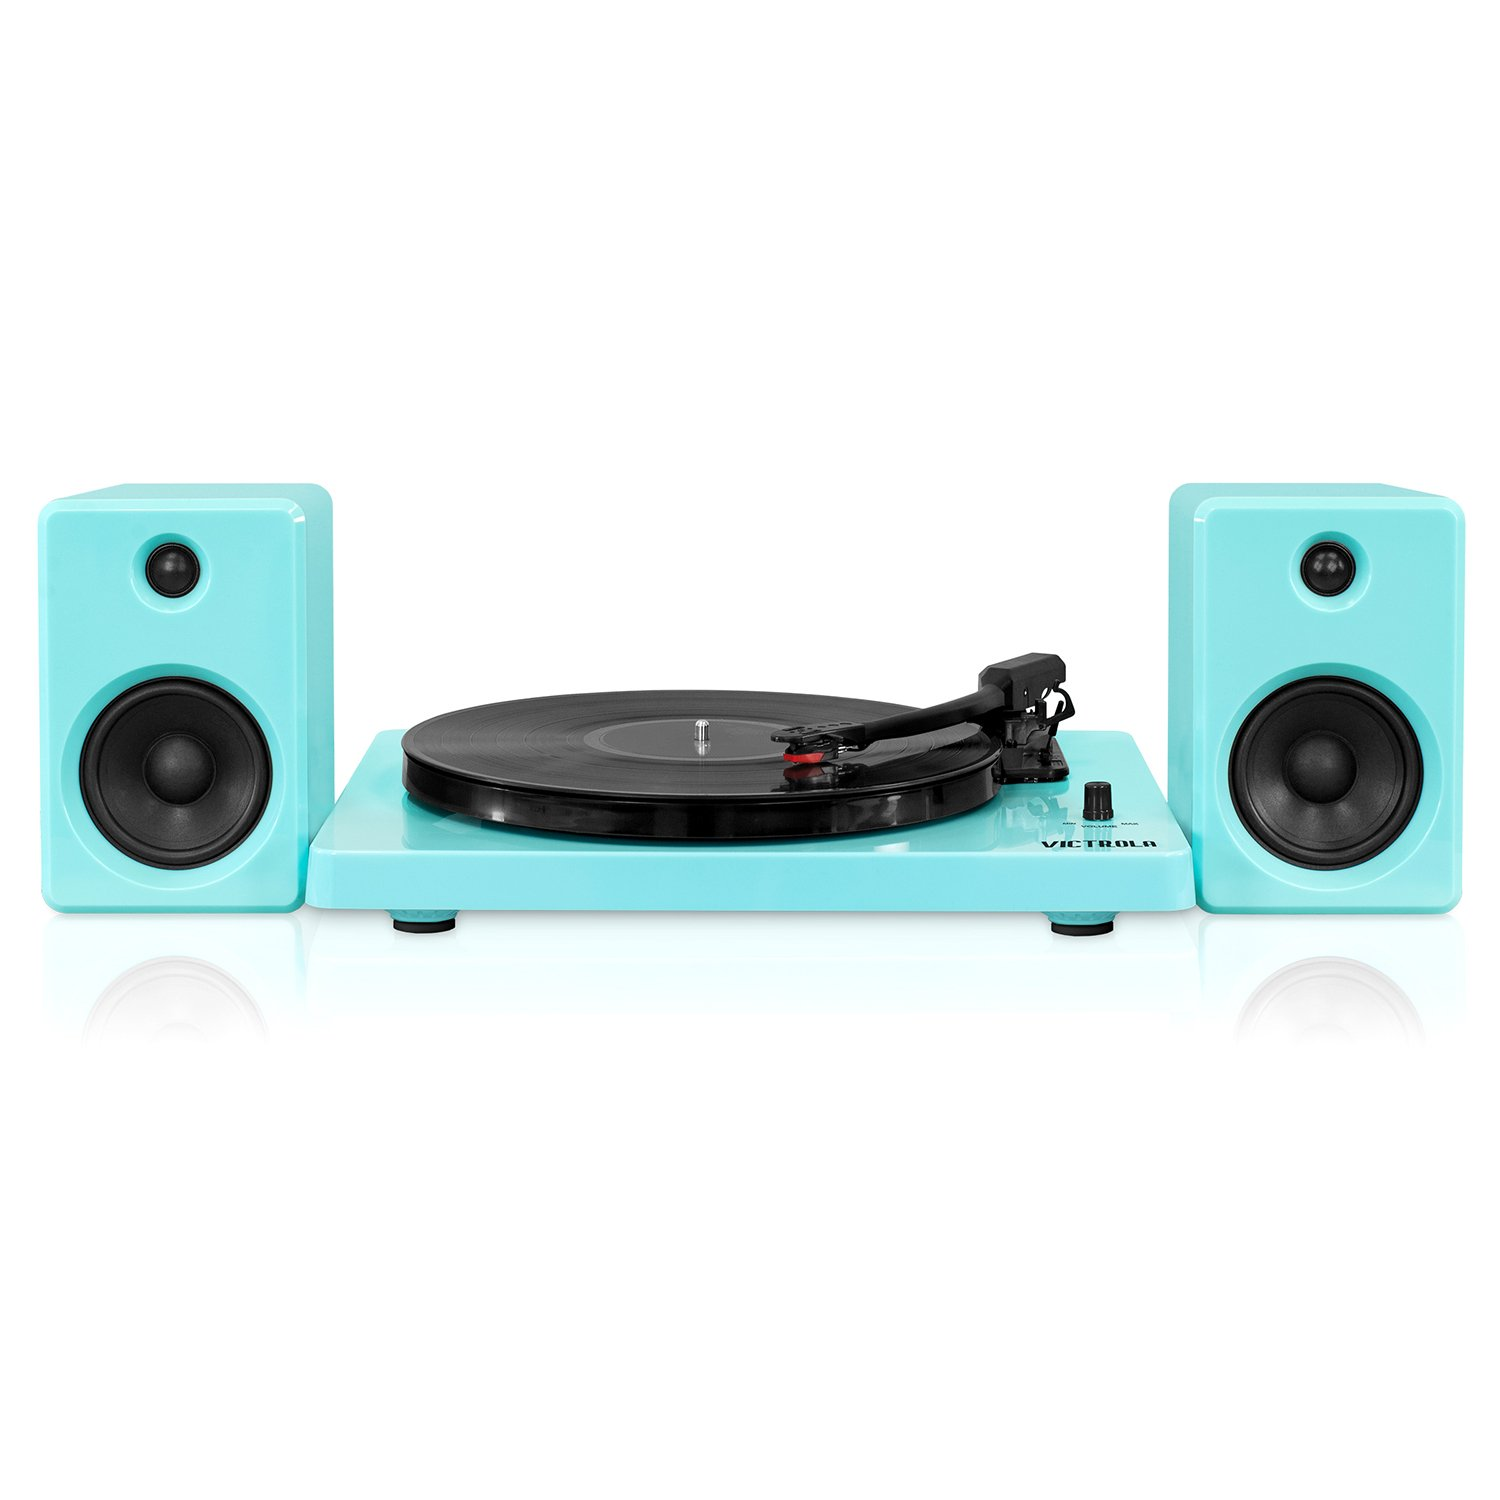 Victrola Modern 3-Speed Bluetooth Turntable with 50 Watt Speakers, White Piano Finish Innovative Technology ITUT-420 White